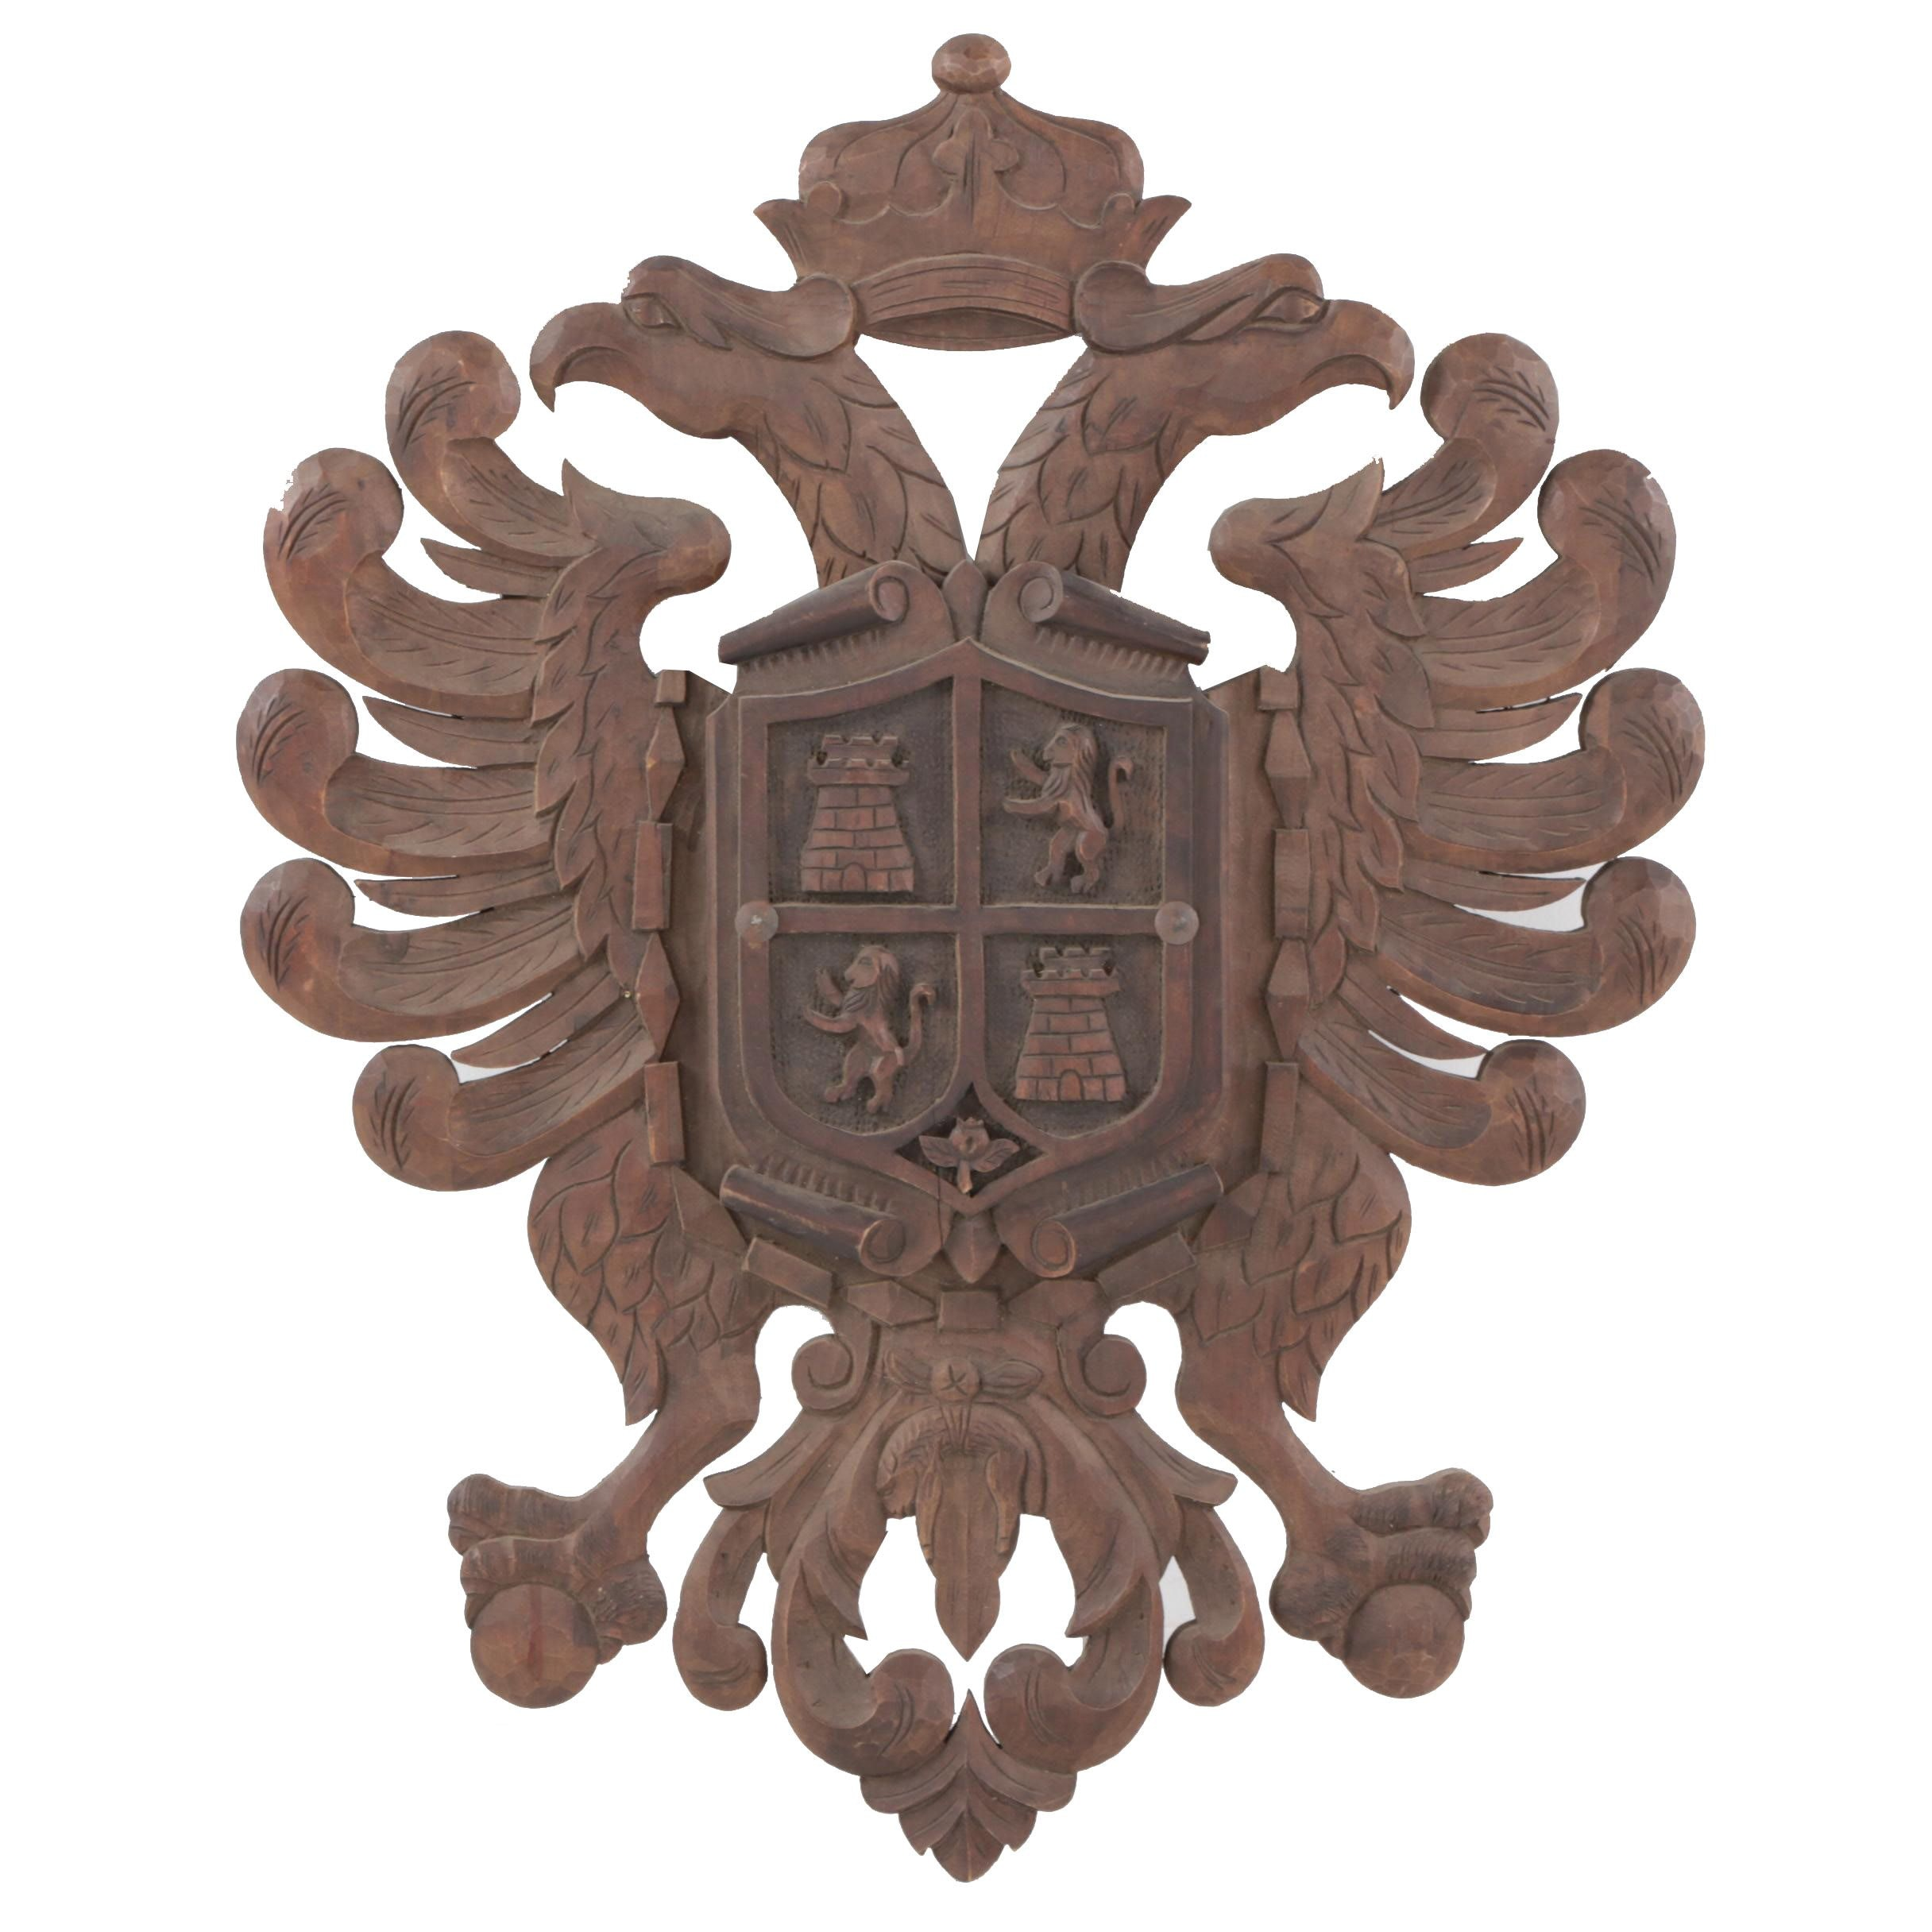 Hand-Carved Coat of Arms, Possibly German or Austrian, 20th Century